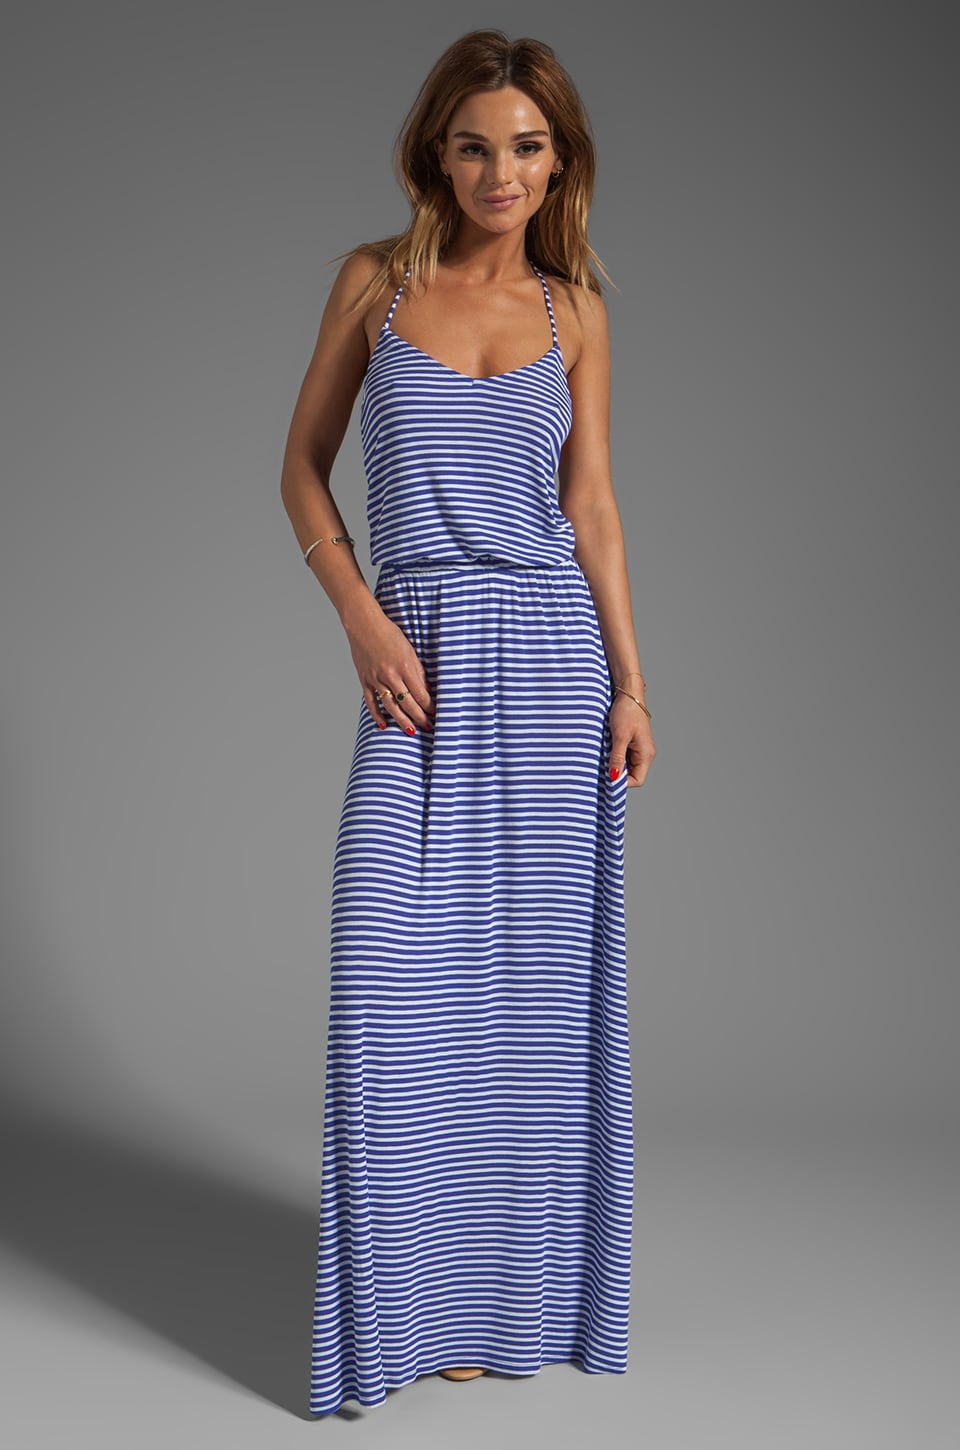 Rachel Pally Rib Graciella Dress in River Stripe